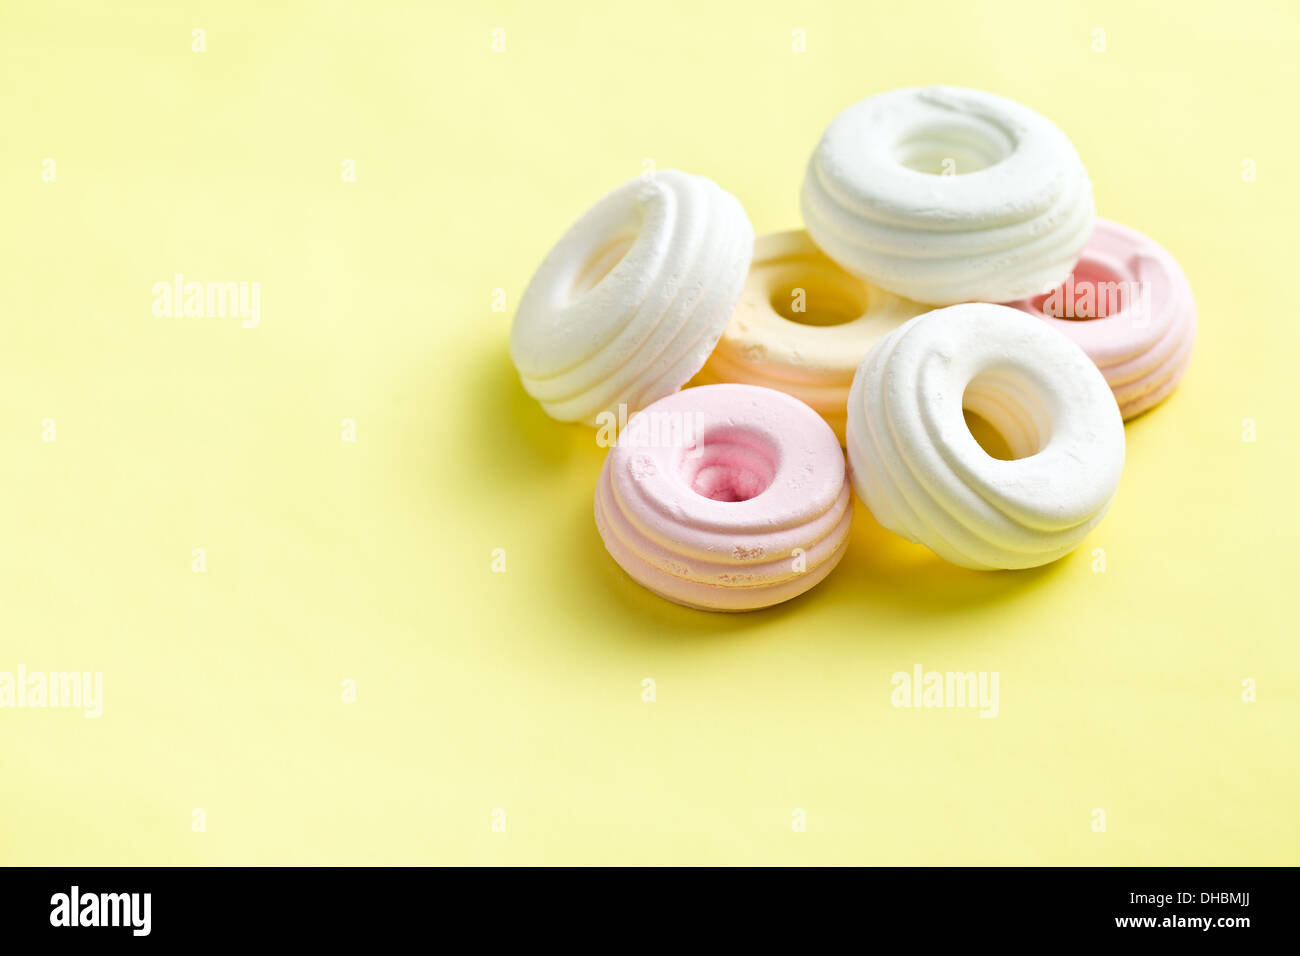 colorful meringues on yellow background - Stock Image